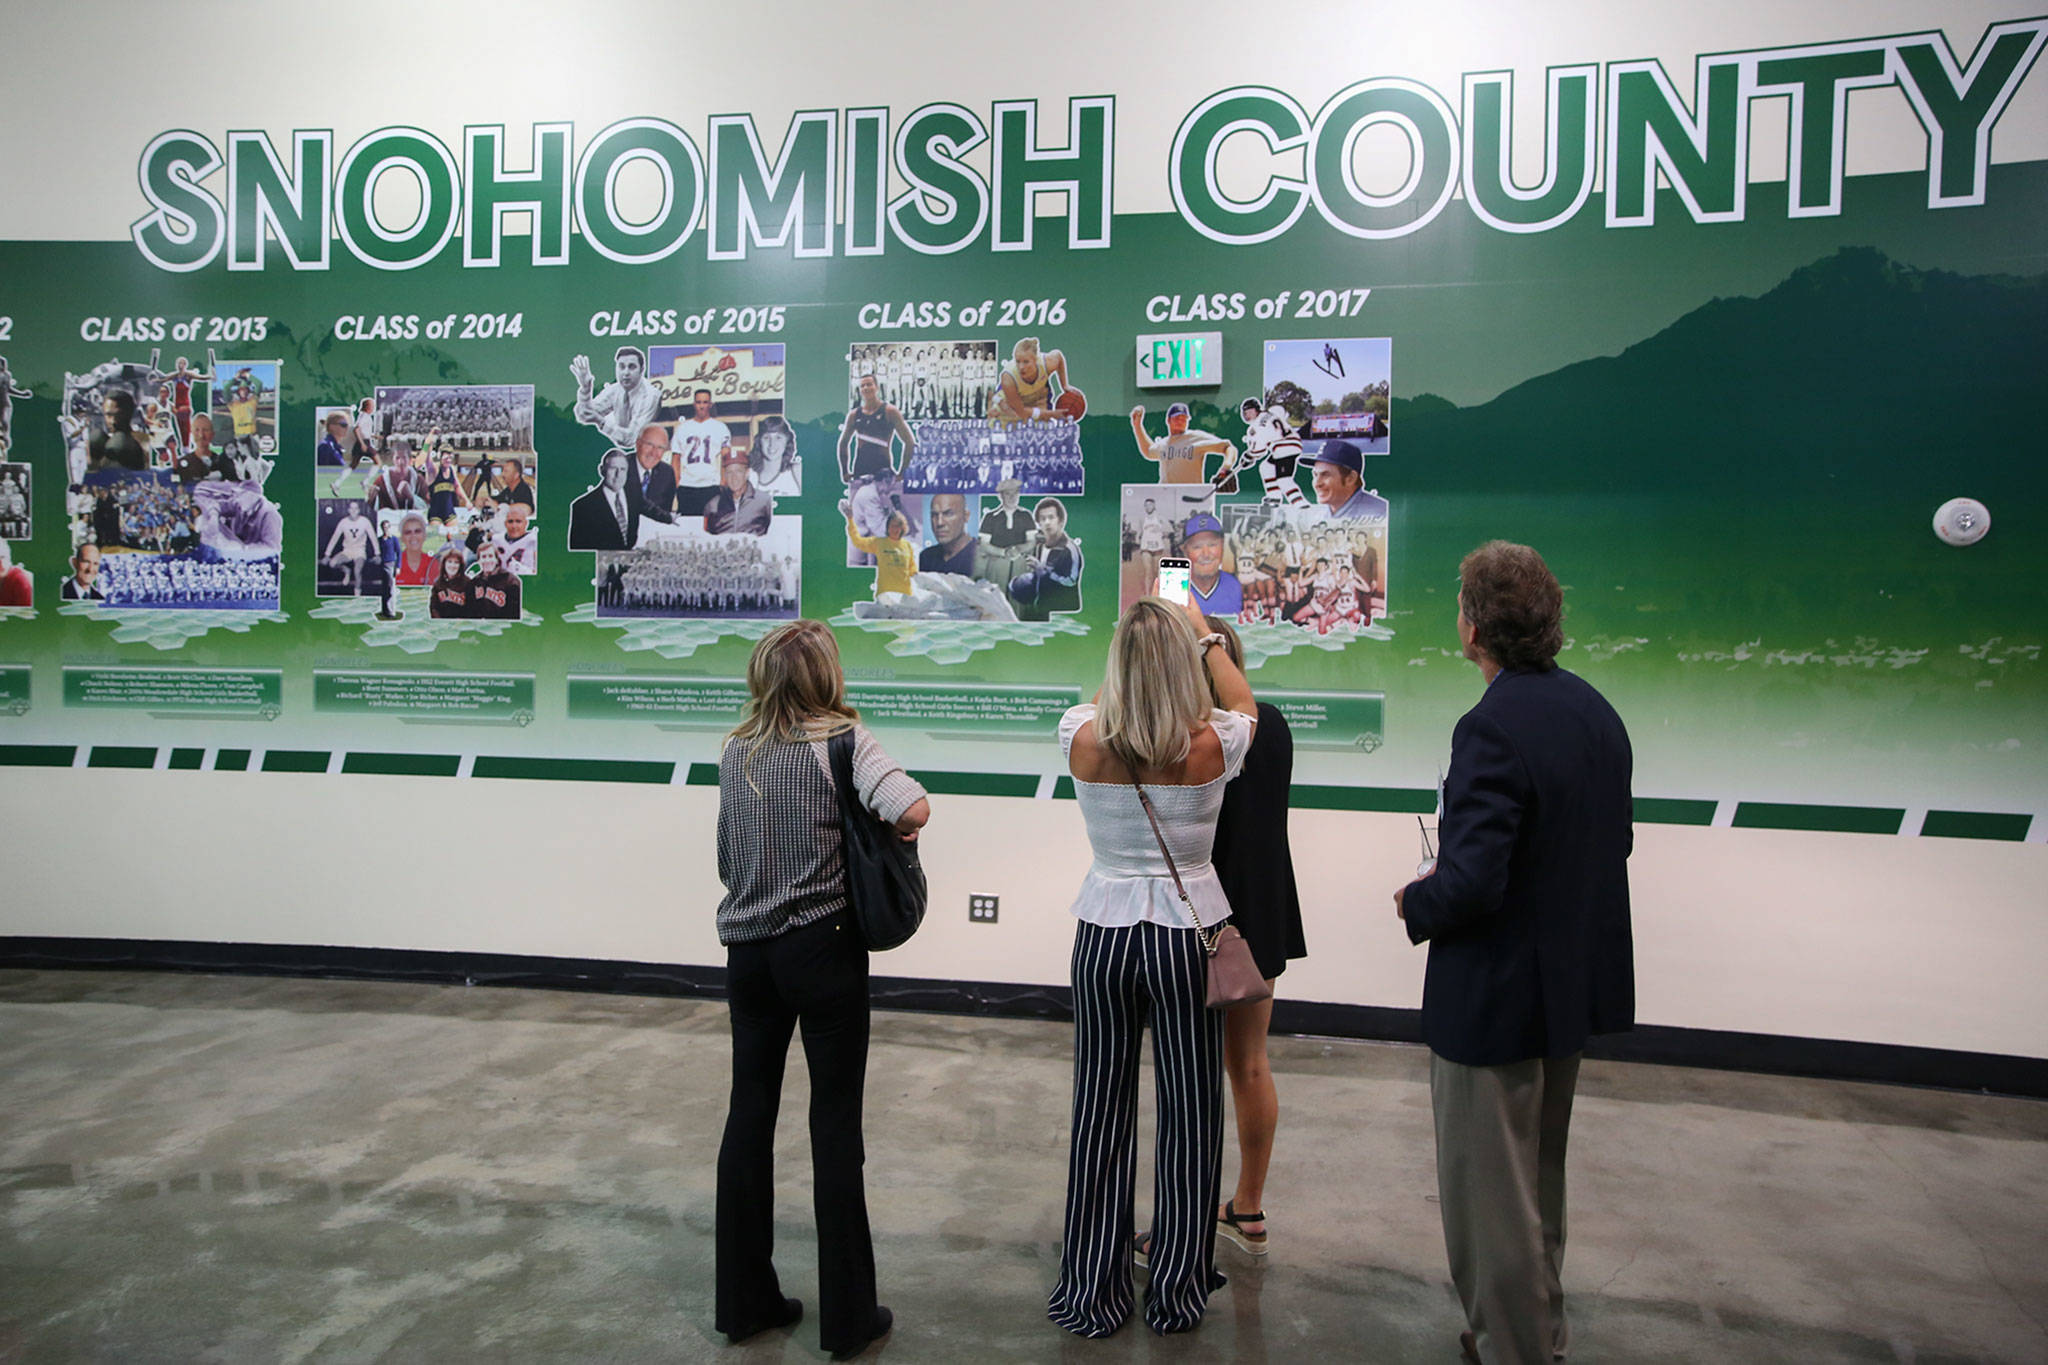 The Snohomish County Sports Hall of Fame has announced that its 2020 banquet has been canceled due to the coronavirus pandemic. The Class of 2020 will be honored at the 2021 ceremony. (Kevin Clark / The Herald)